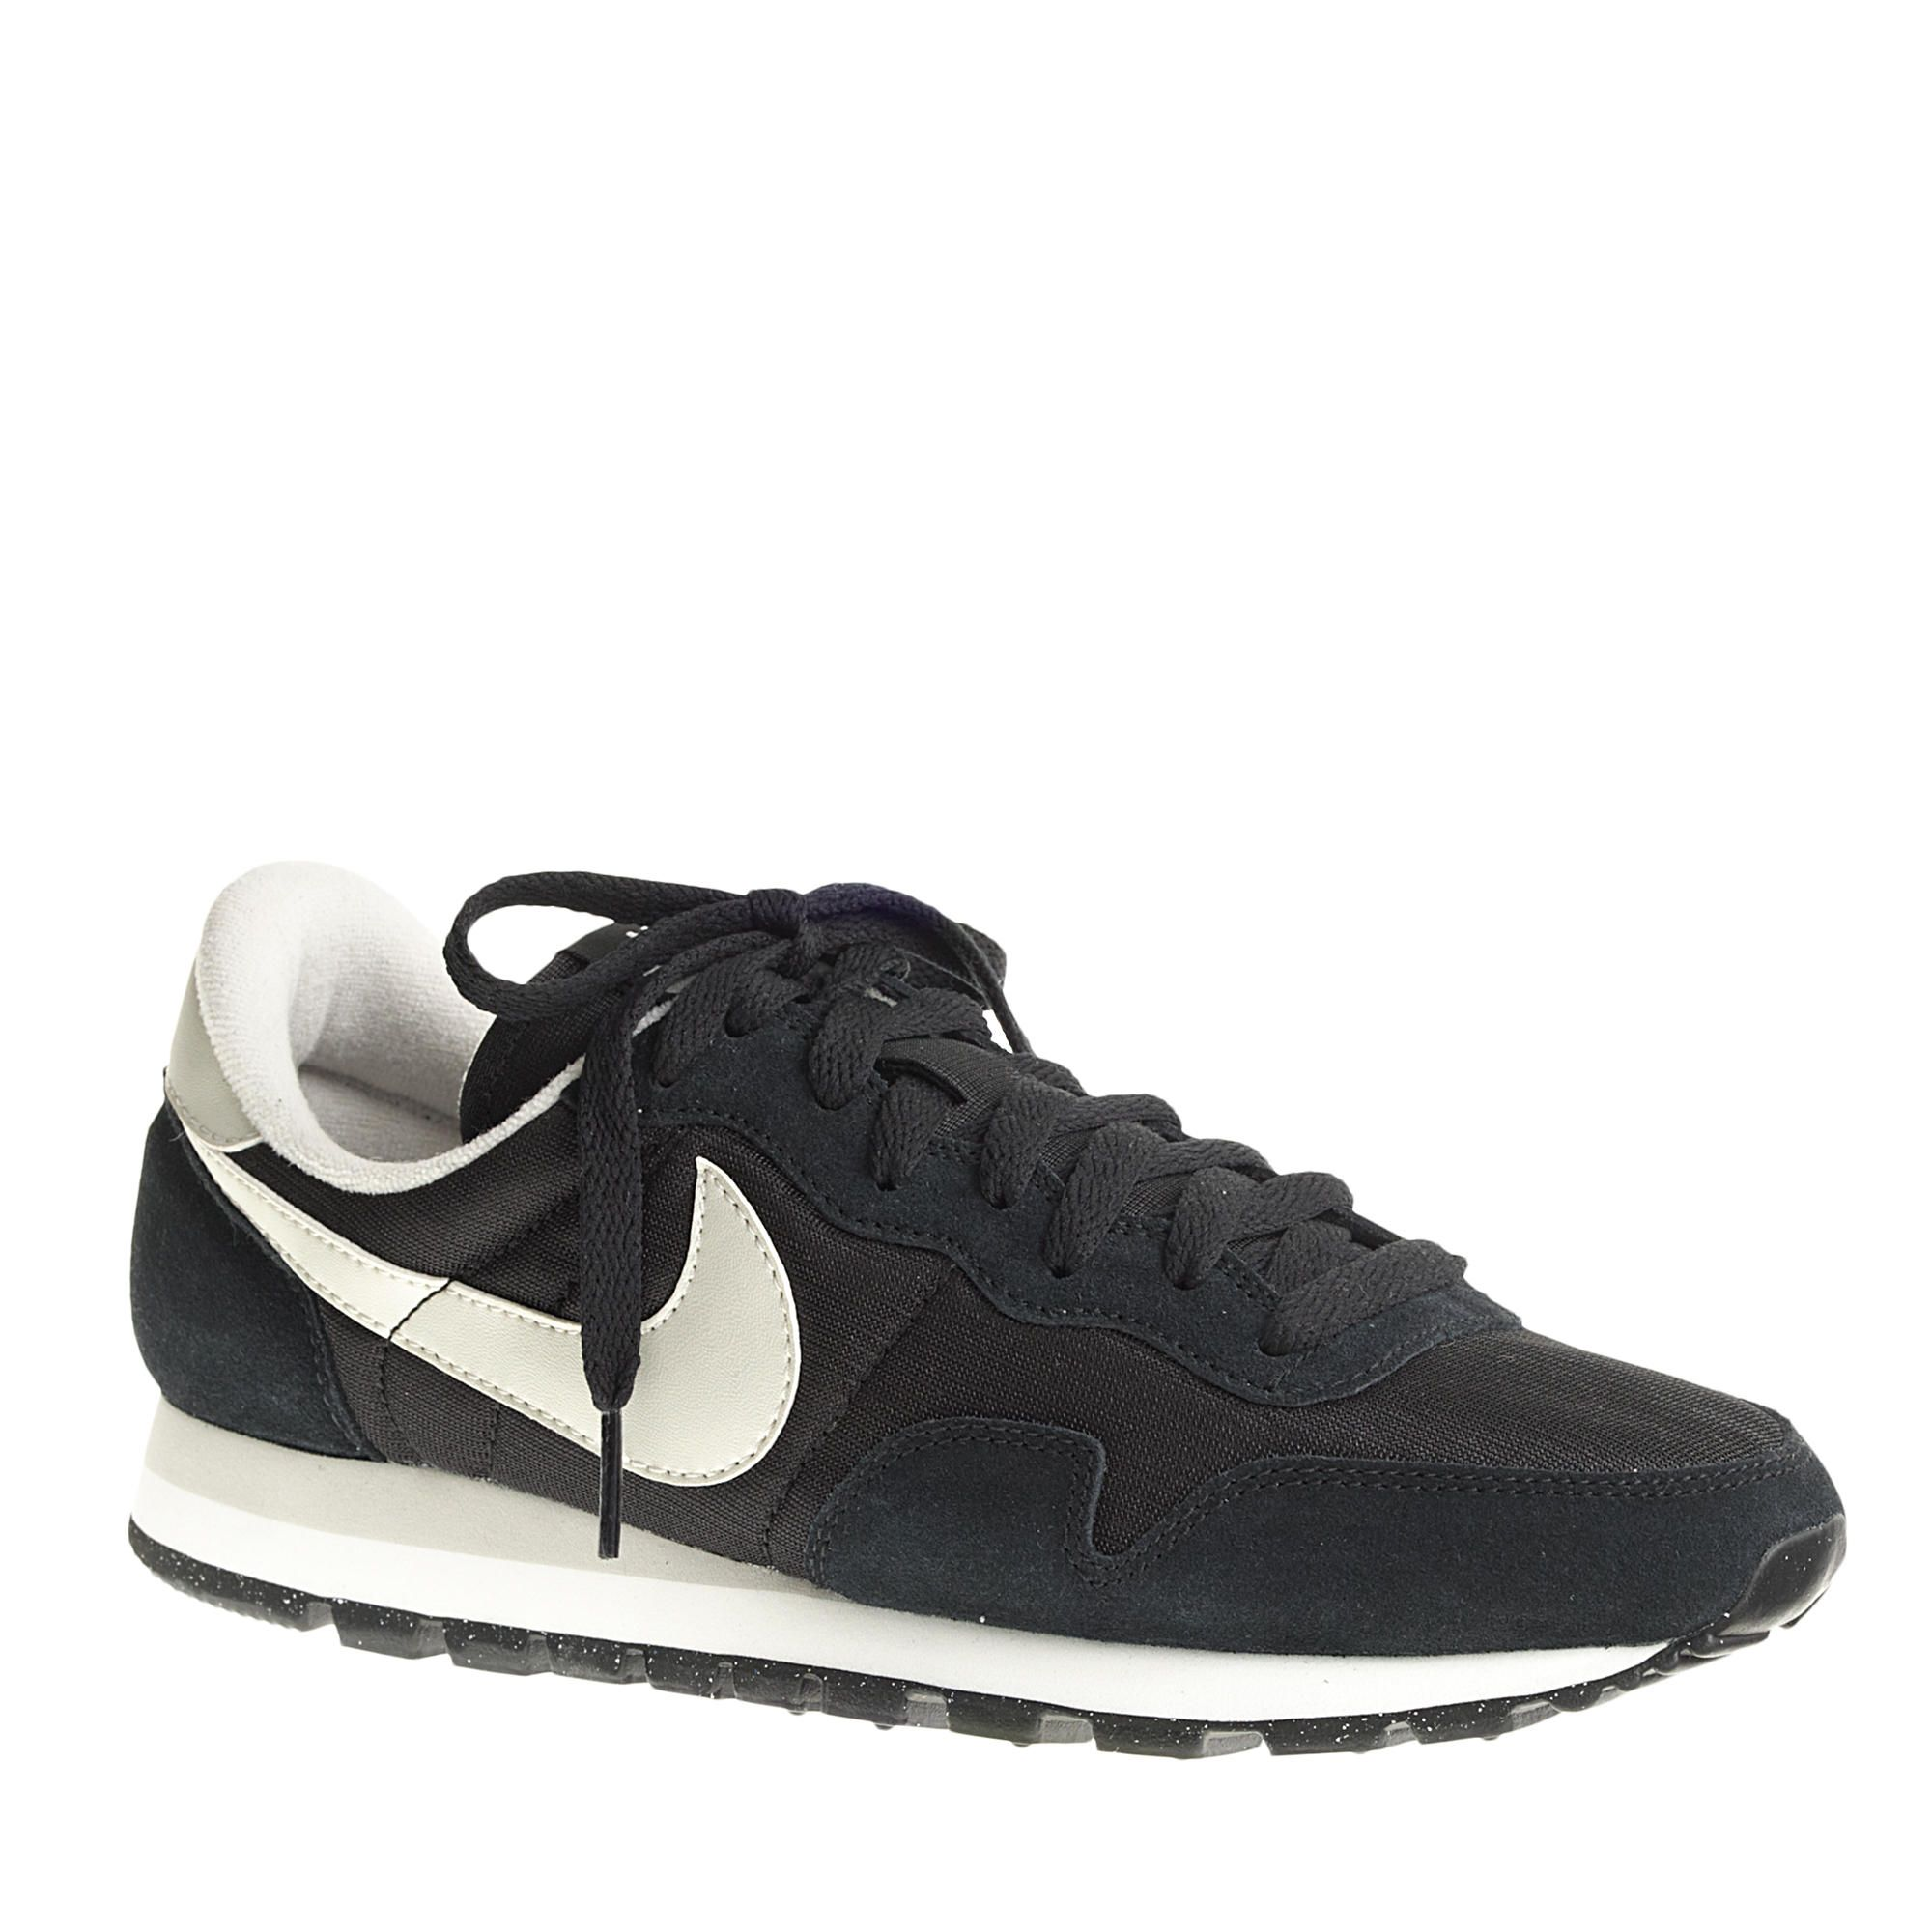 debutthe after years Nike Thirty its classic Air Pegasus TlFK1Jc